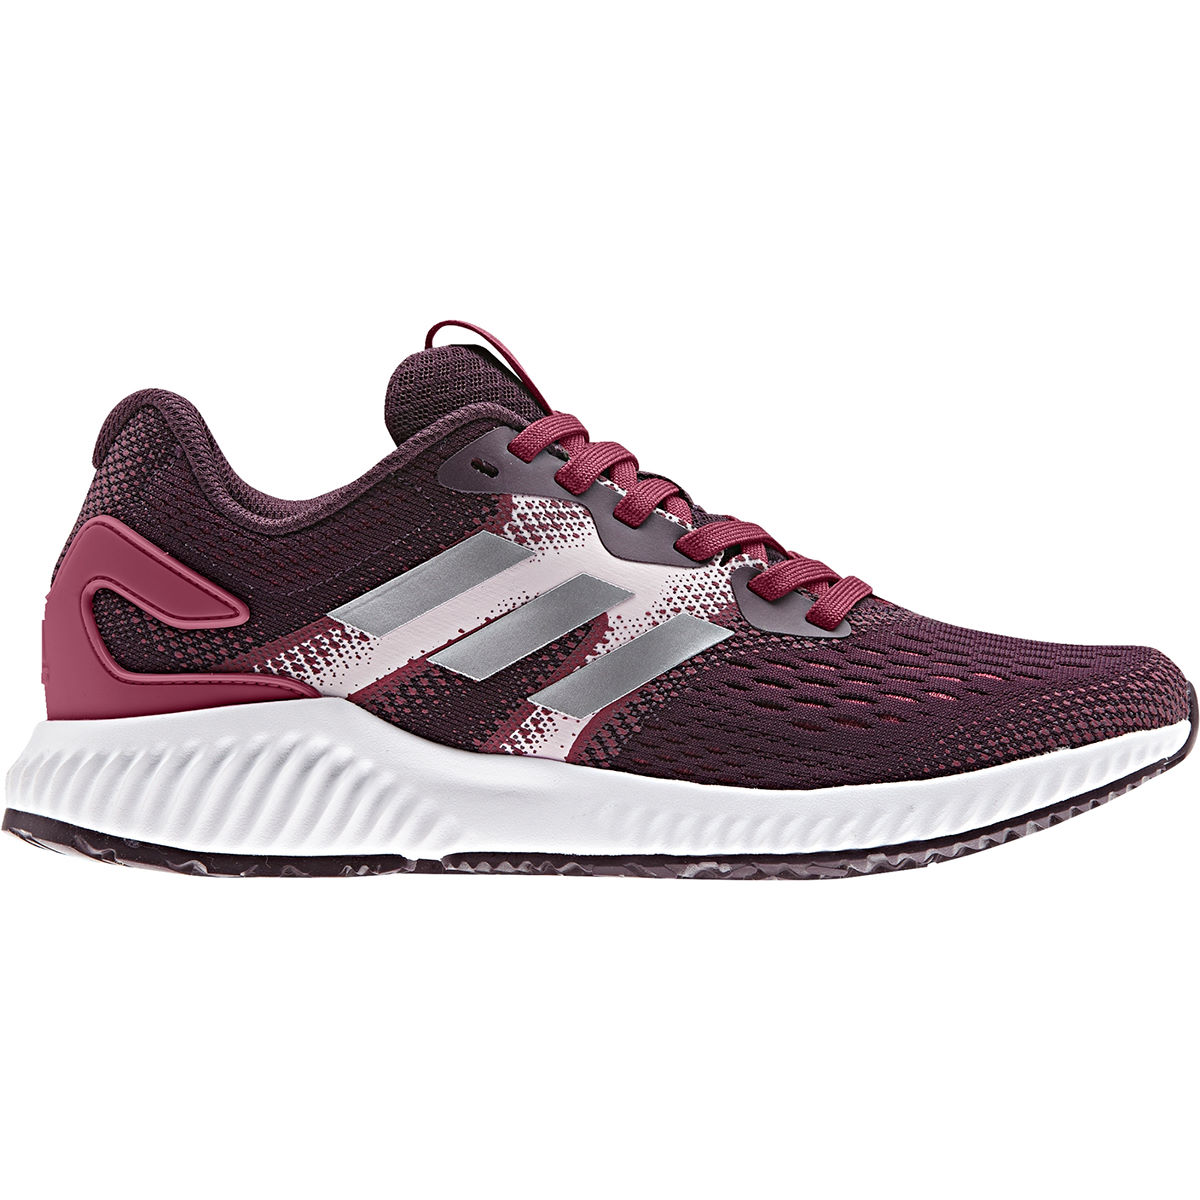 Chaussures Femme adidas Aerobounce - 4 NOBLE RED S18/MYSTER